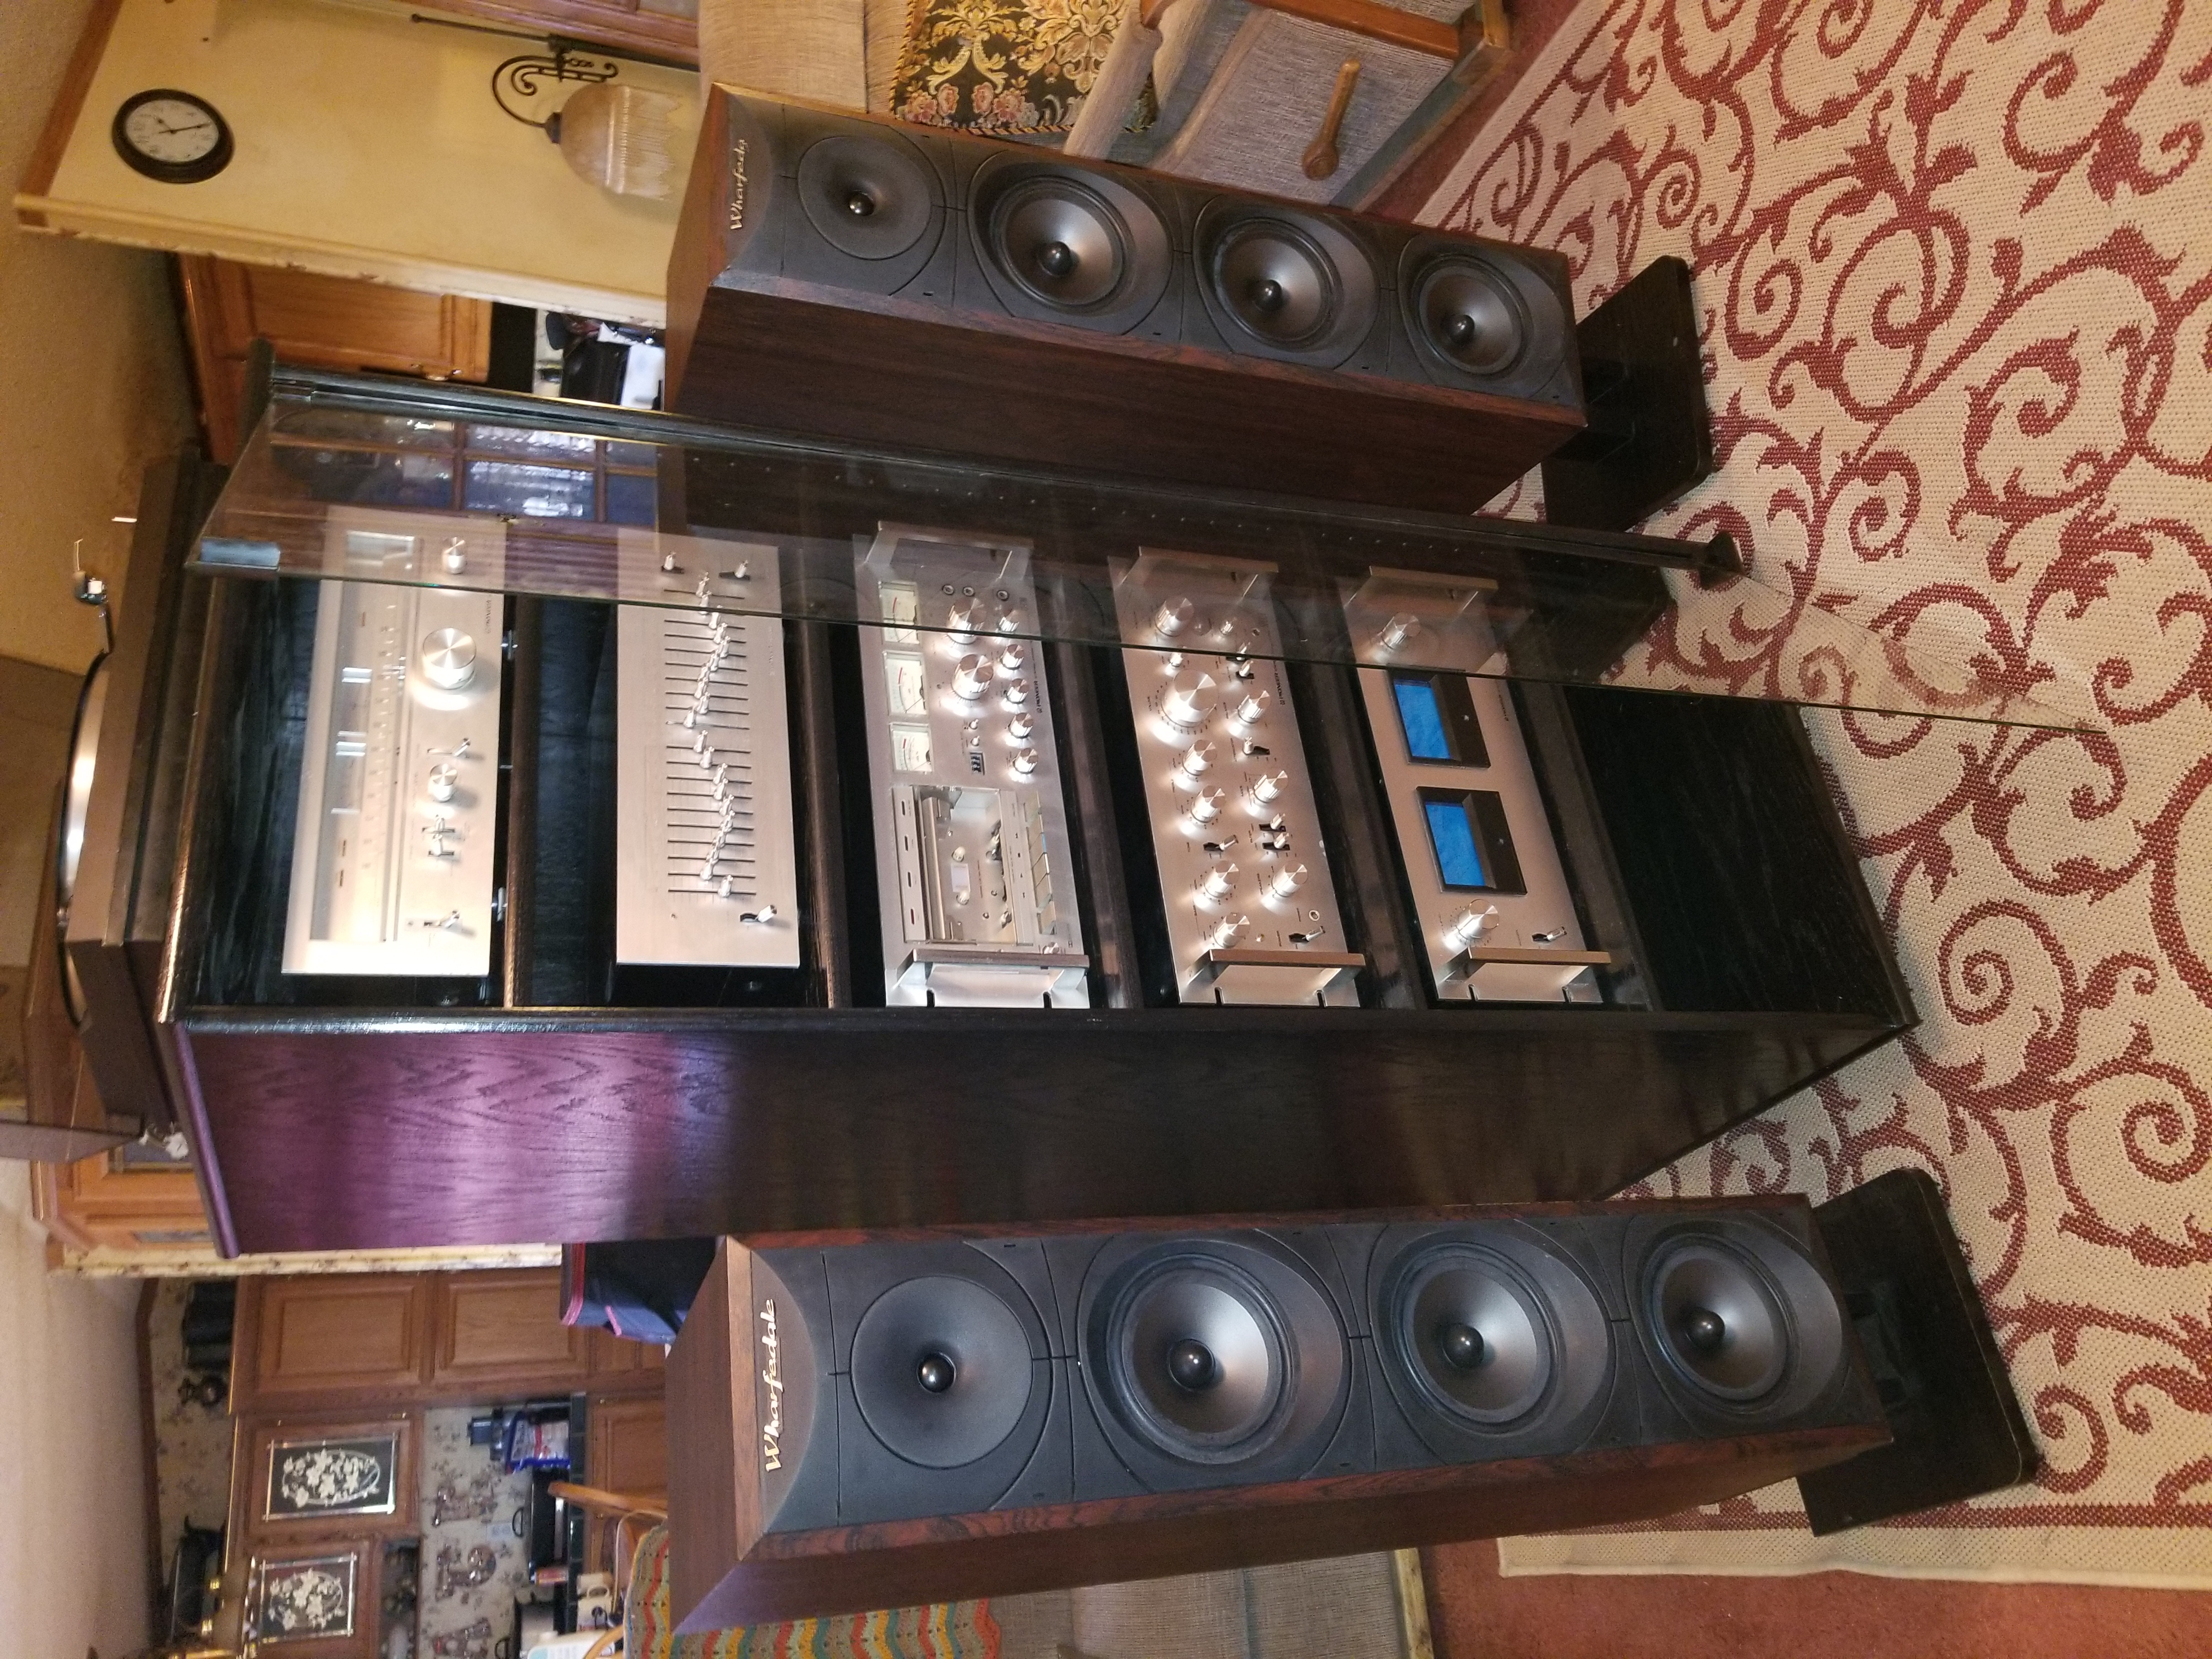 72 inch high black oak with clear glass door entertainment center all vintage Sony components!